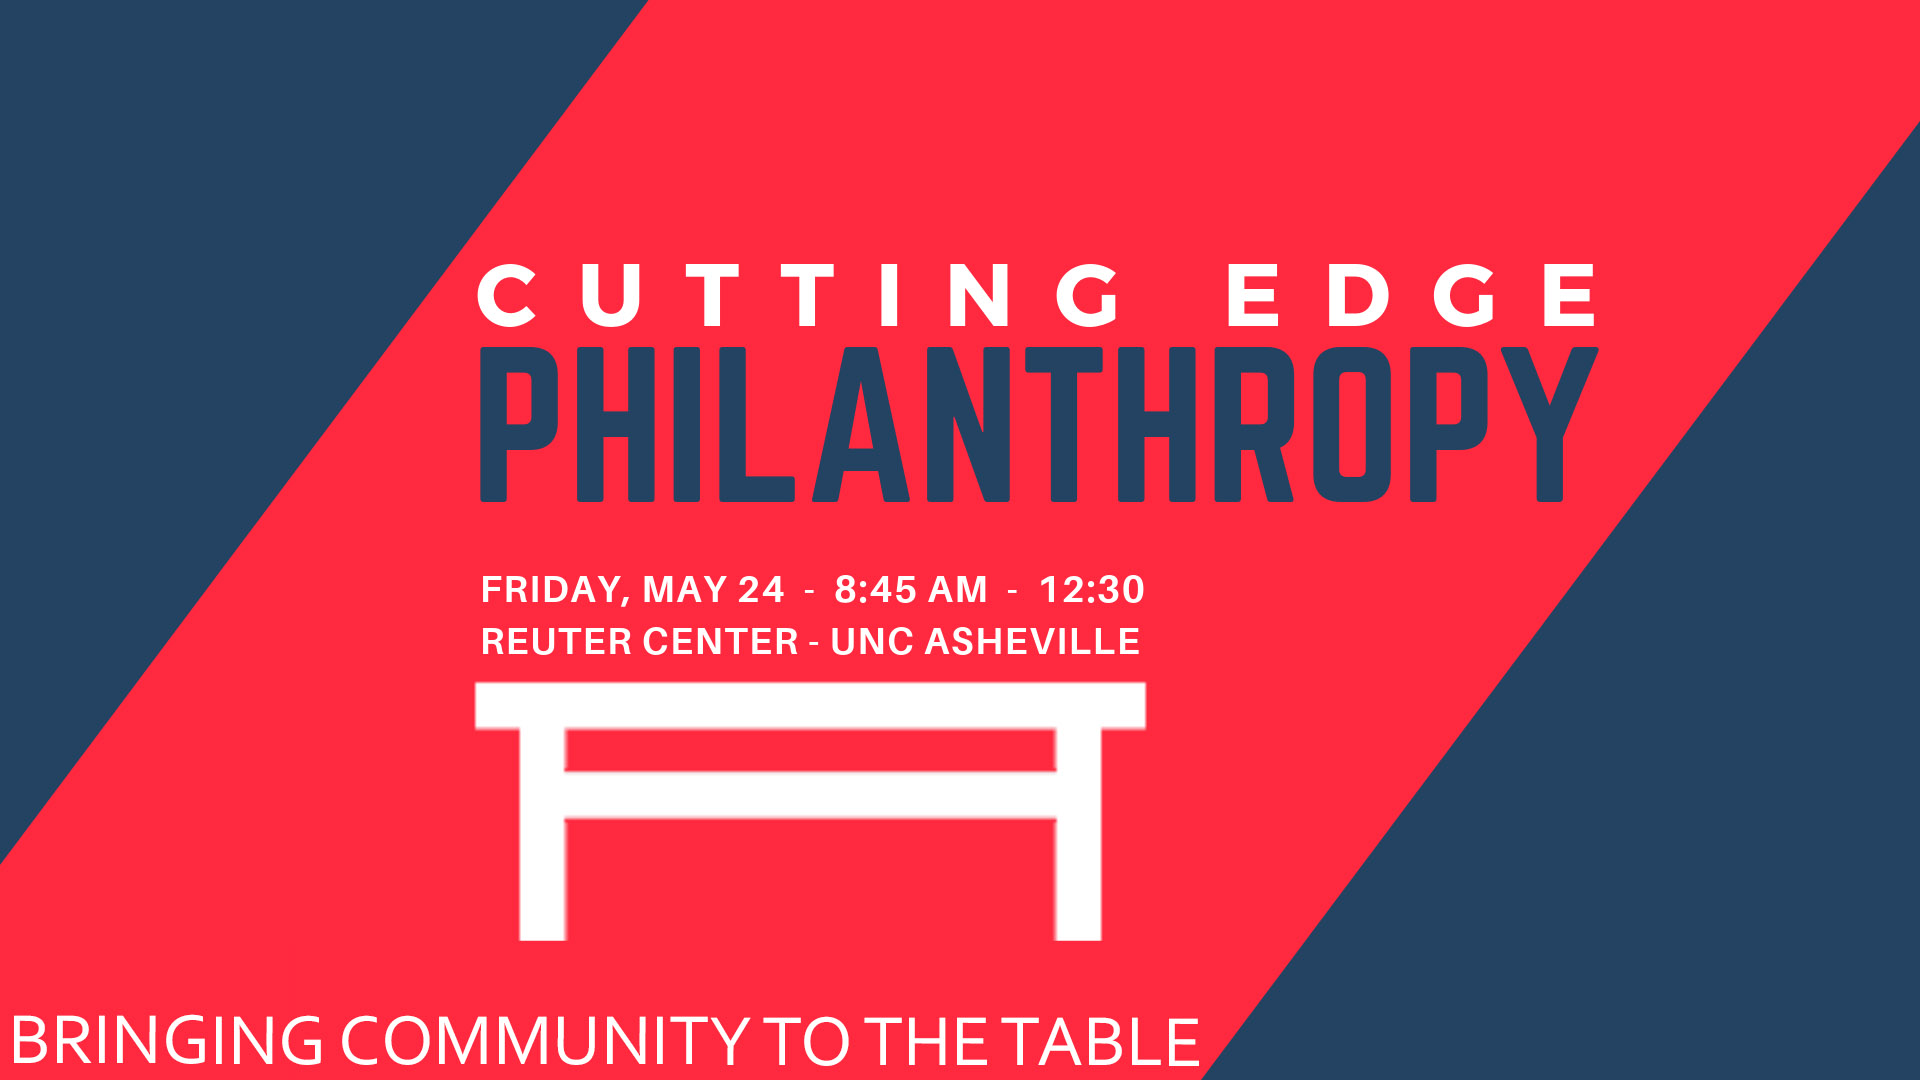 Click this link to register:    https://www.eventbrite.com/e/cutting-edge-philanthropy-bringing-community-to-the-table-tickets-61044999236